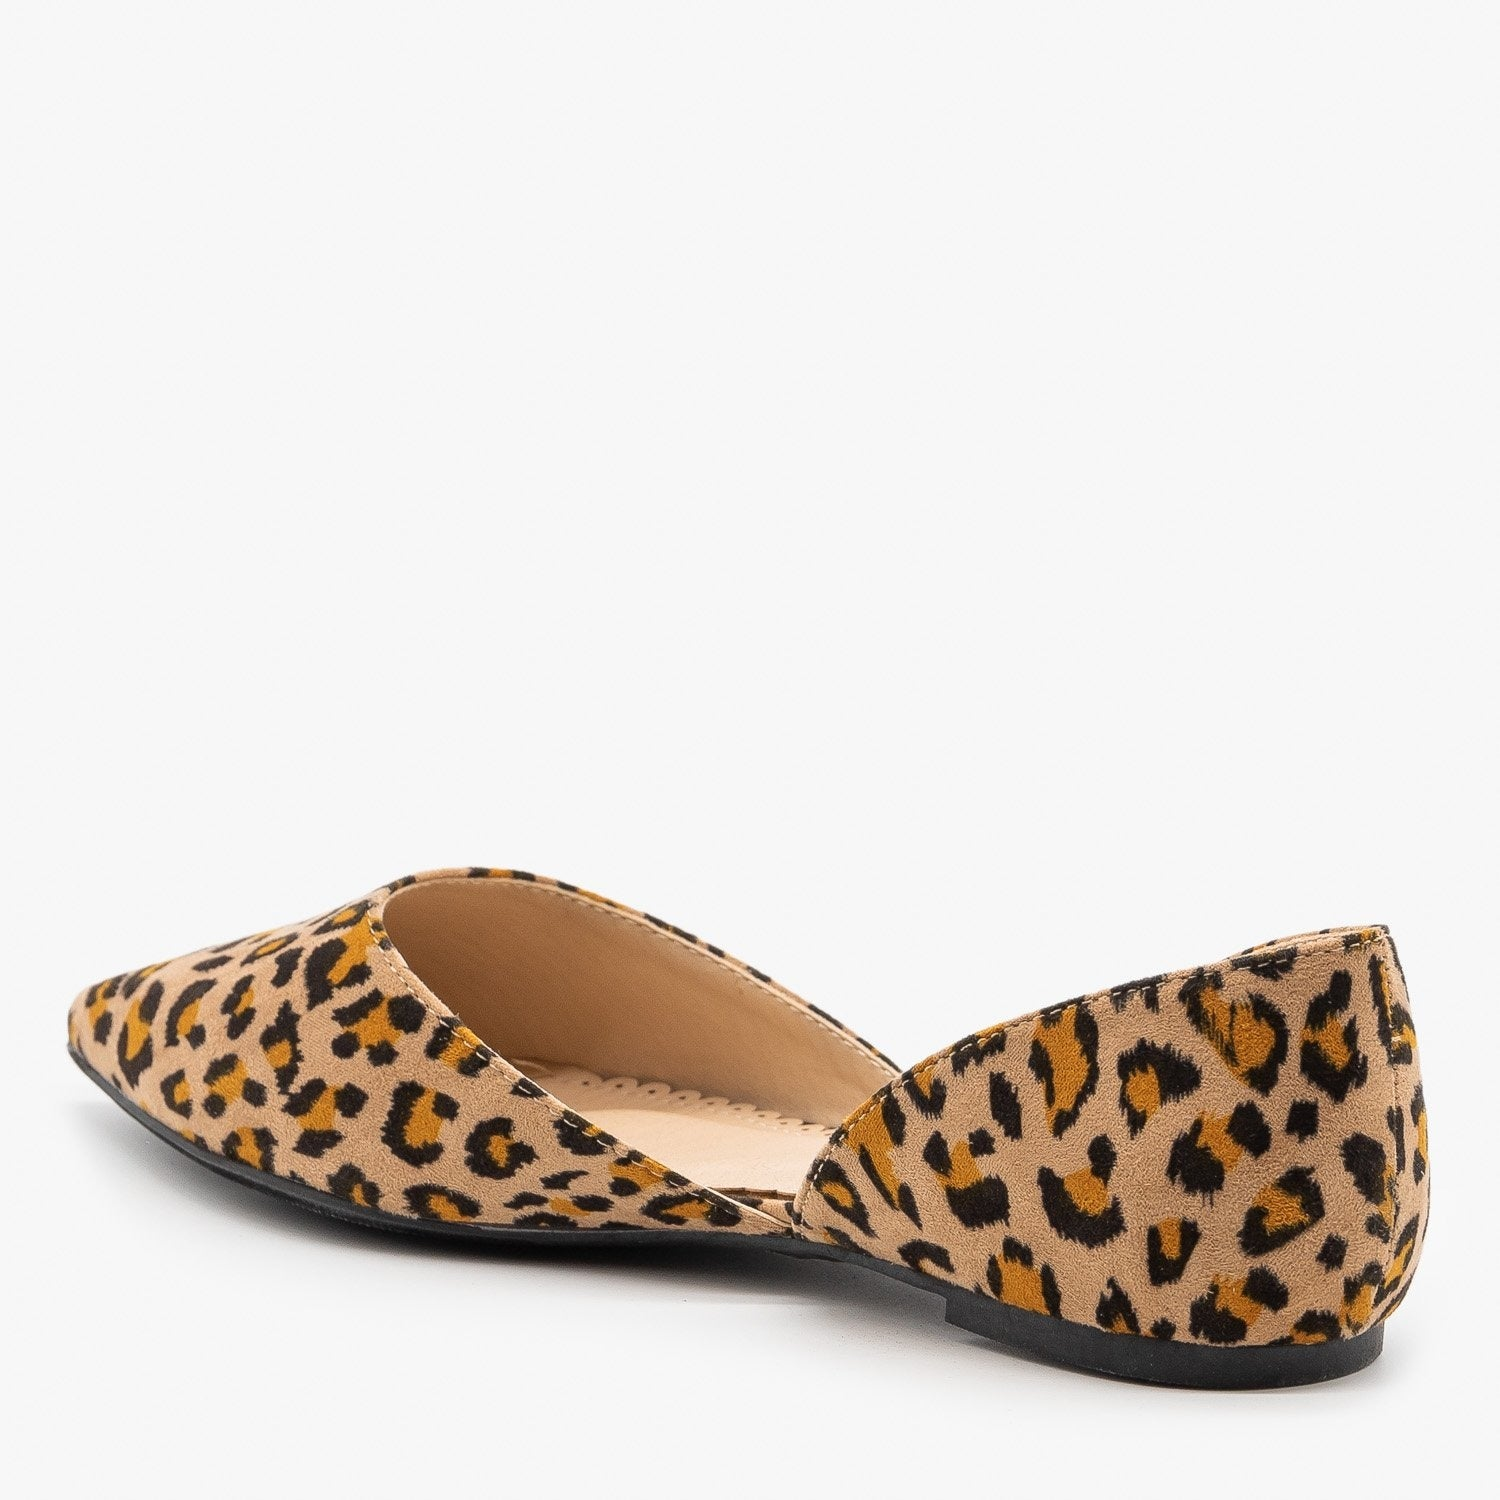 Leopard Print d'Orsay Pointed Toe Flats